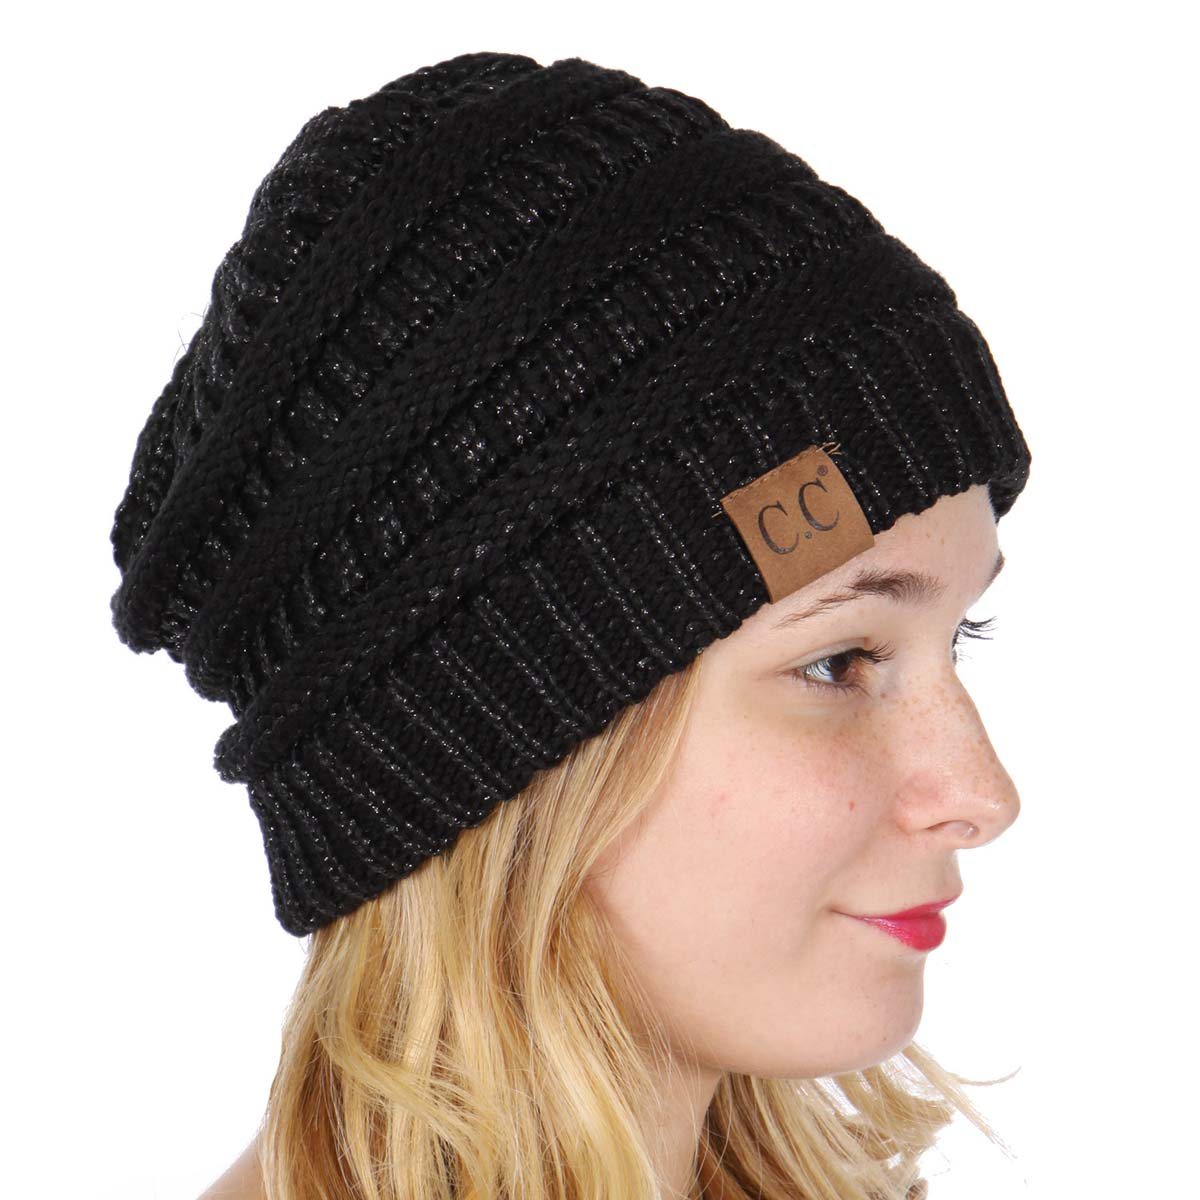 Black Metallic Yarn Knit CC Beanie Hat